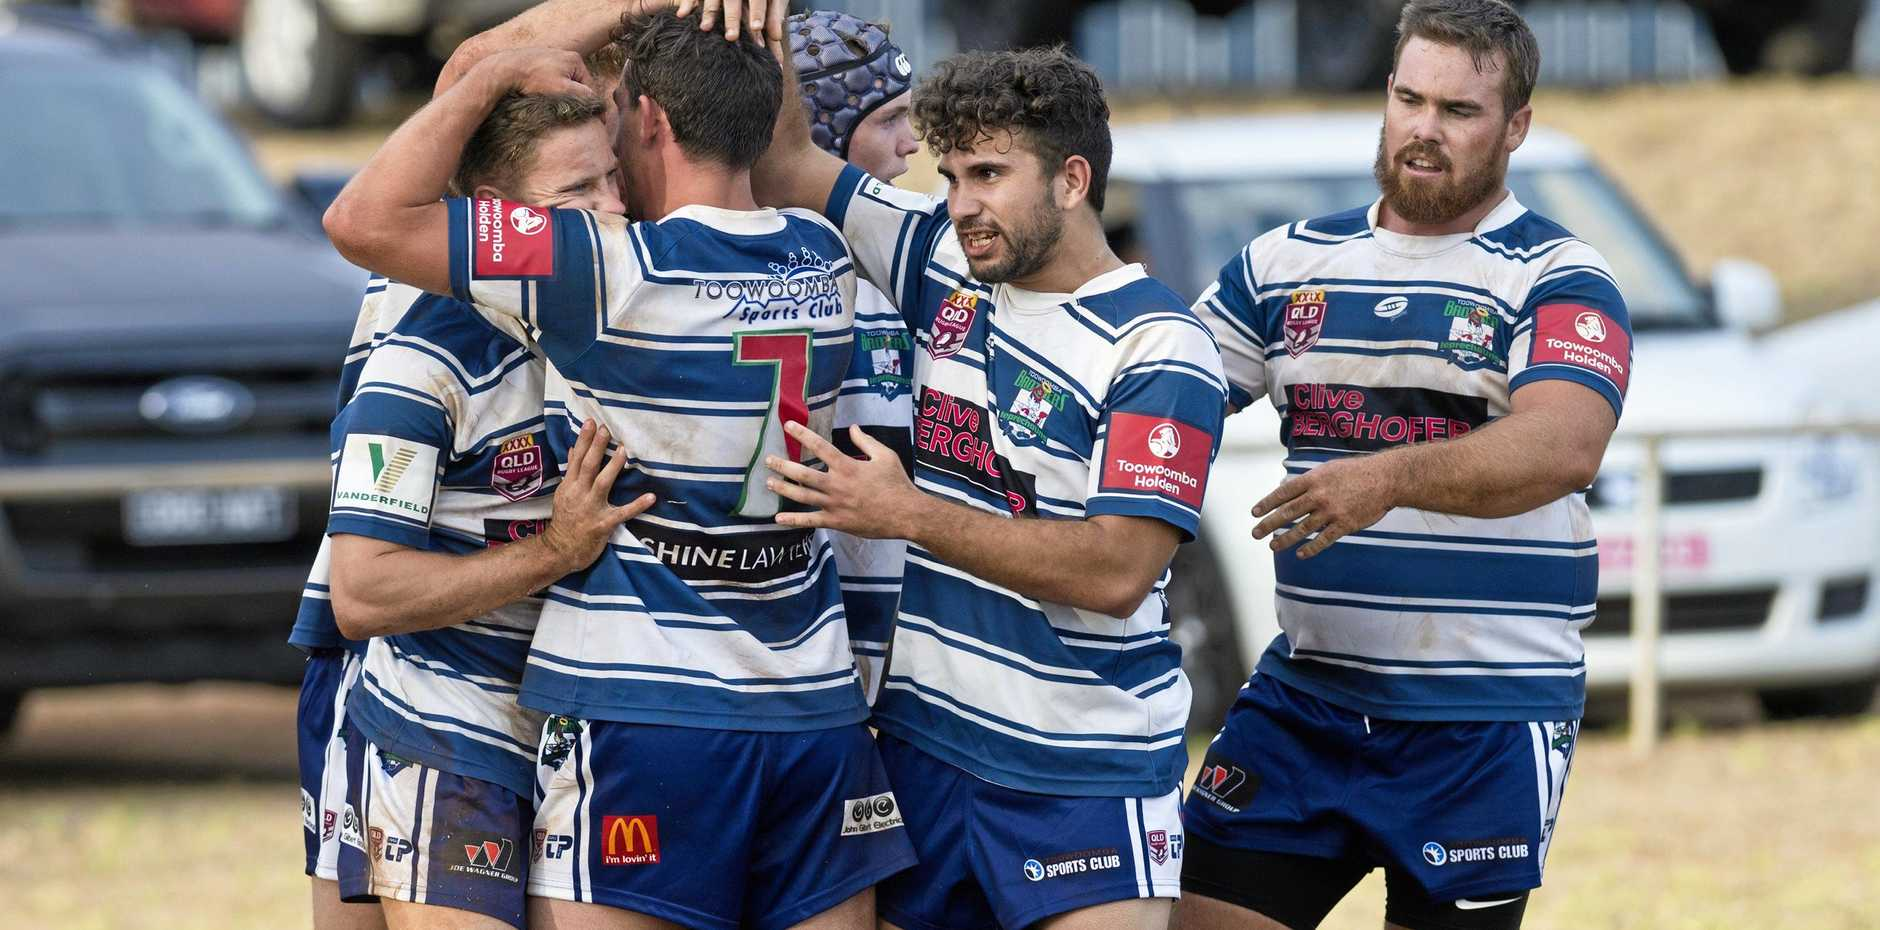 Brothers celebrate a Kyle Wagner (left) try at Glenholme Park on Saturday.